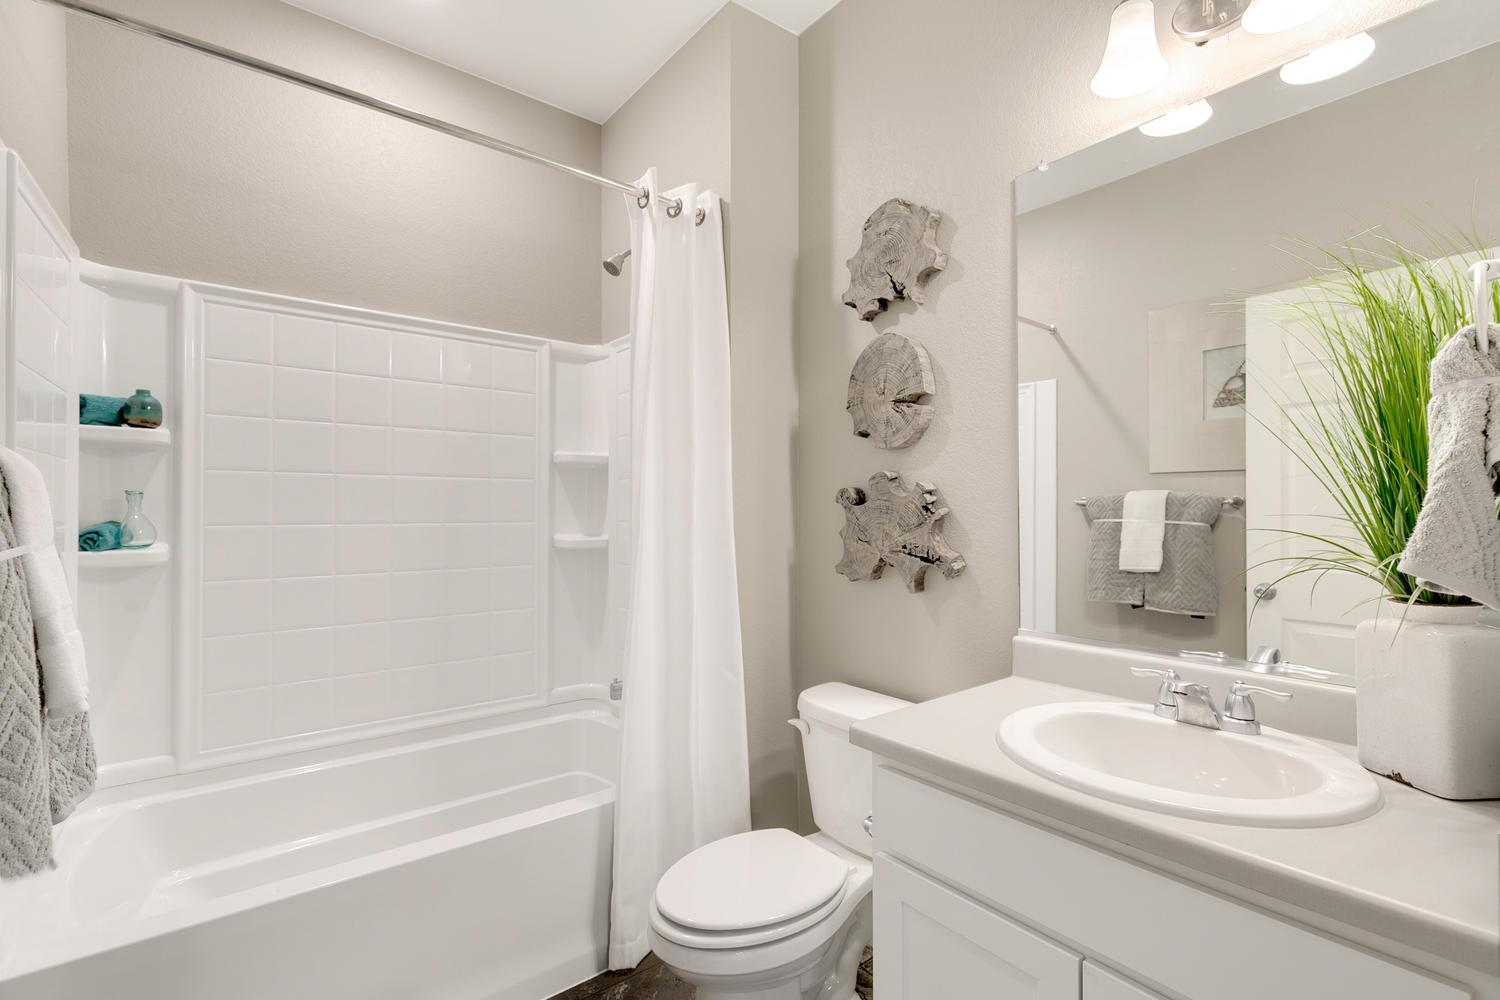 Bathroom featured in the HERRING By D.R. Horton in Fort Collins-Loveland, CO